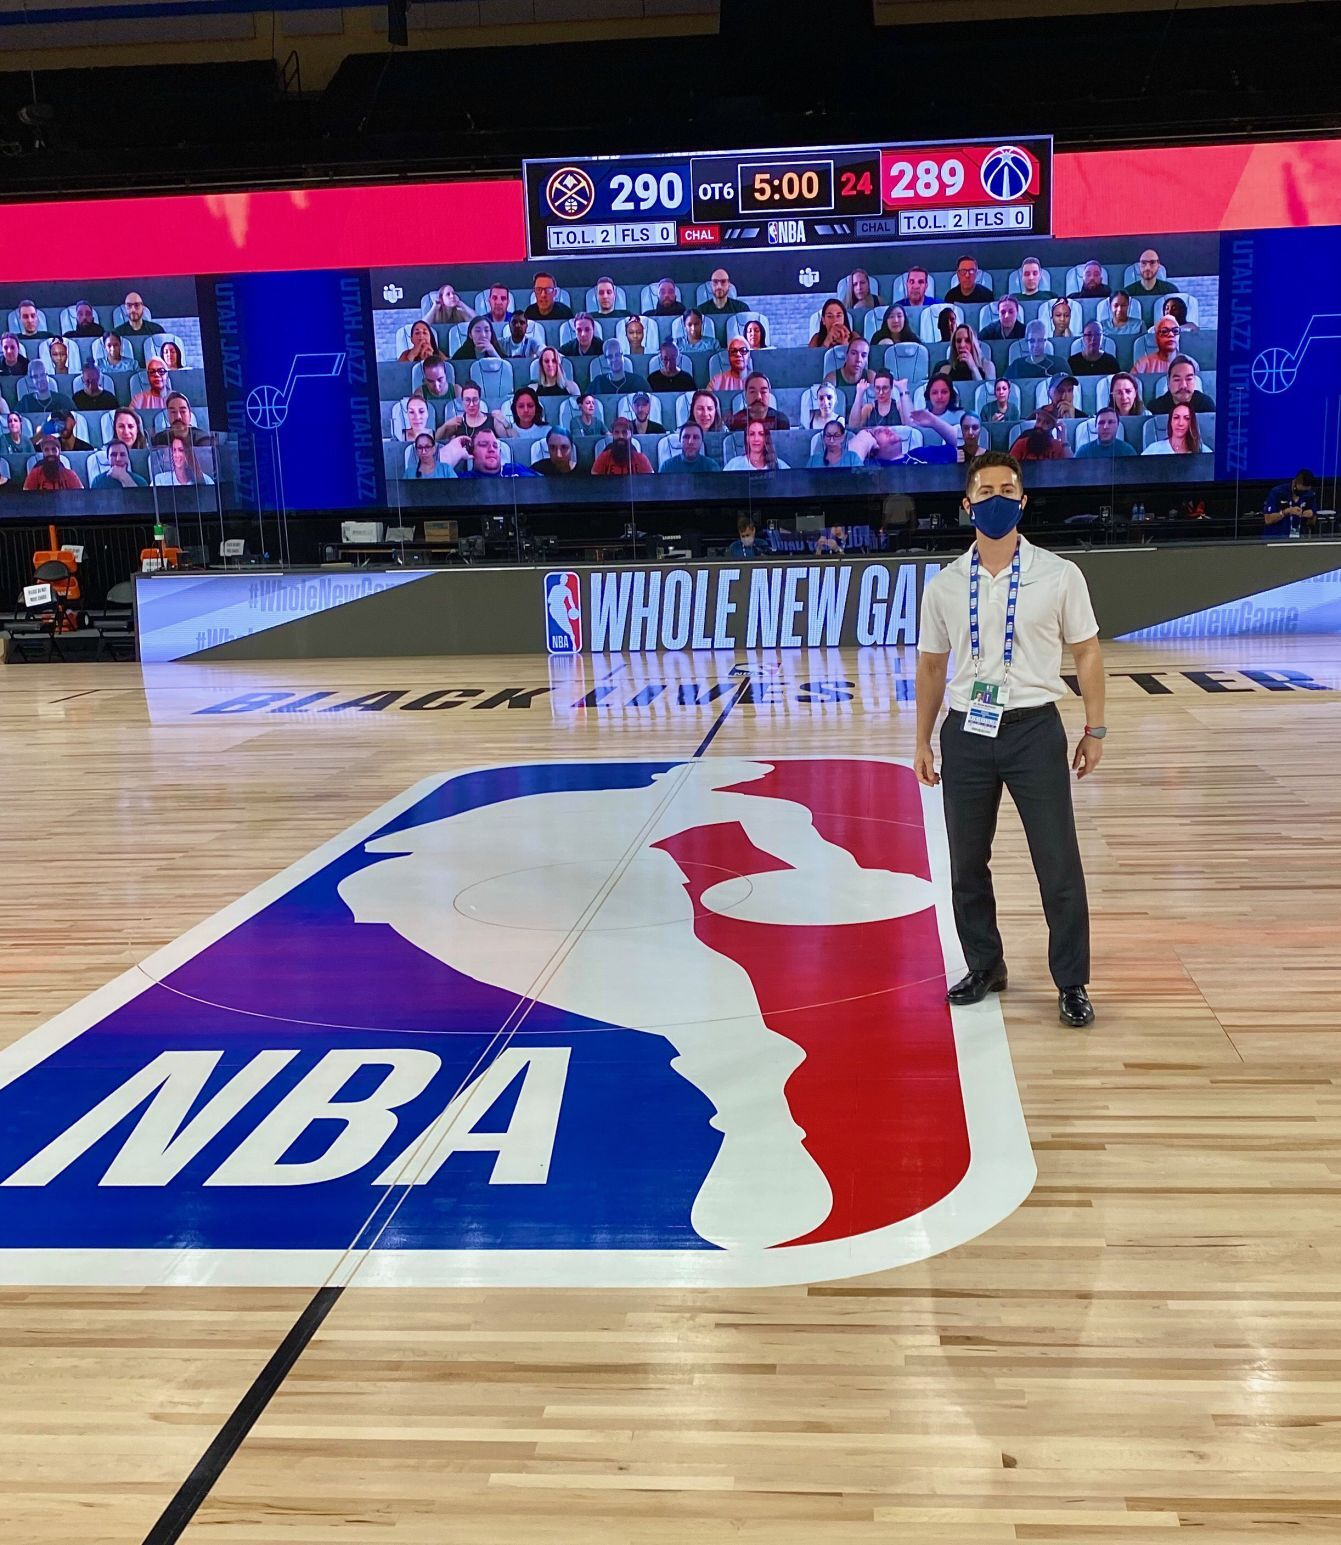 LIFE IN A BUBBLE: Former Bishop Hannan guard Bryan Murtaugh is team doctor for the Washington Wizards